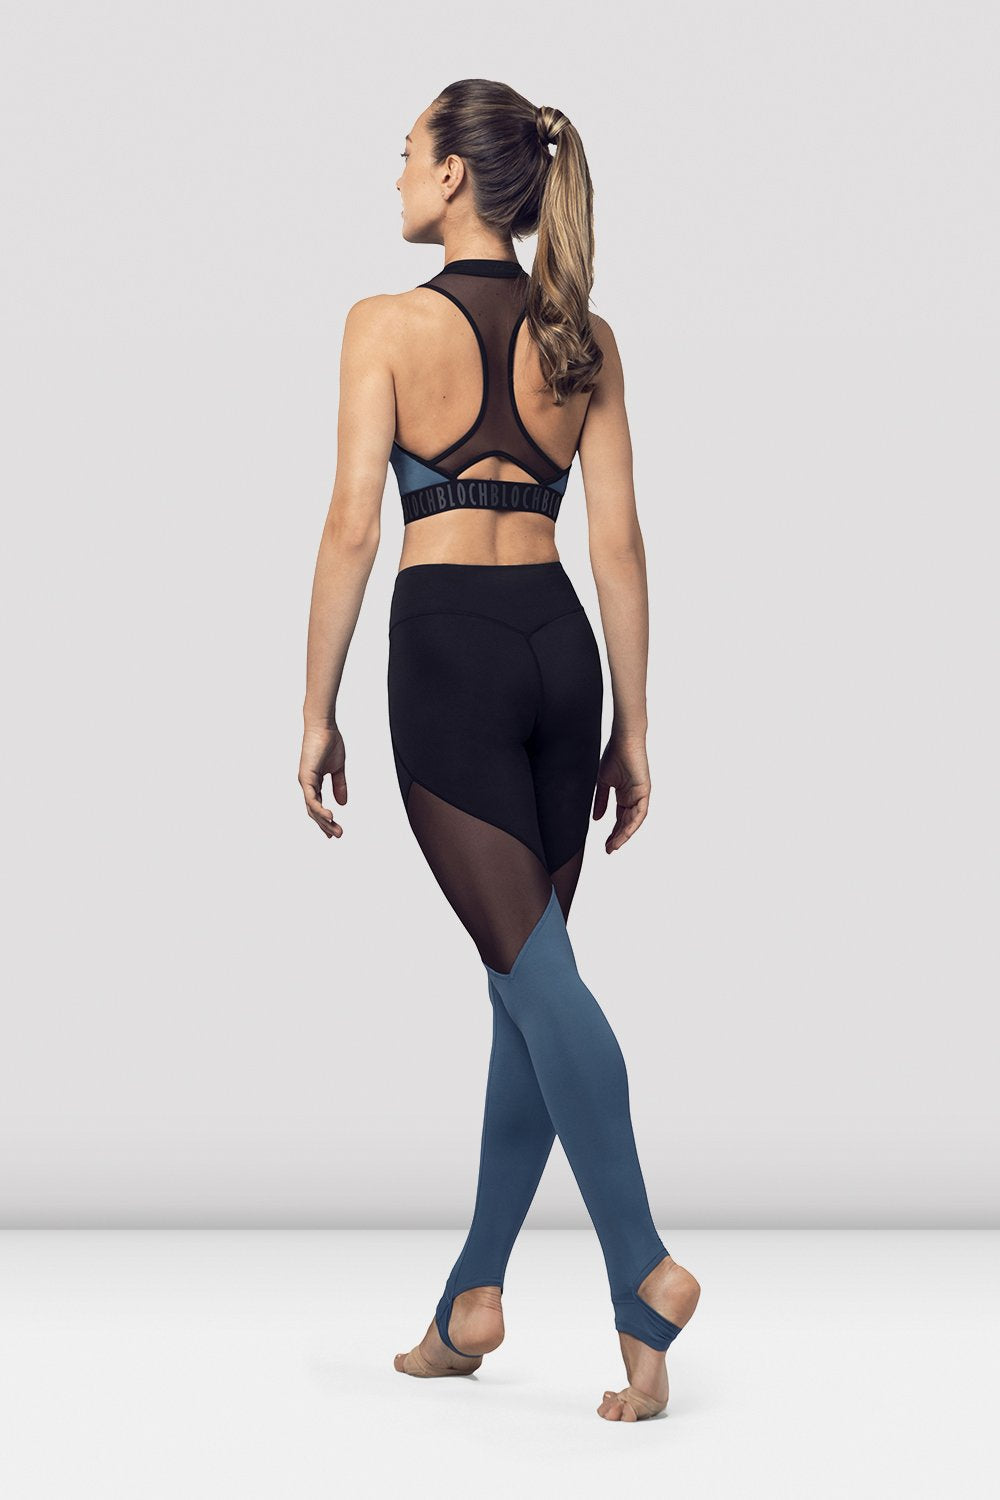 Seaport Bloch Ladies Full Length Leggings on female model in parallel fourth position on releve facing back corner